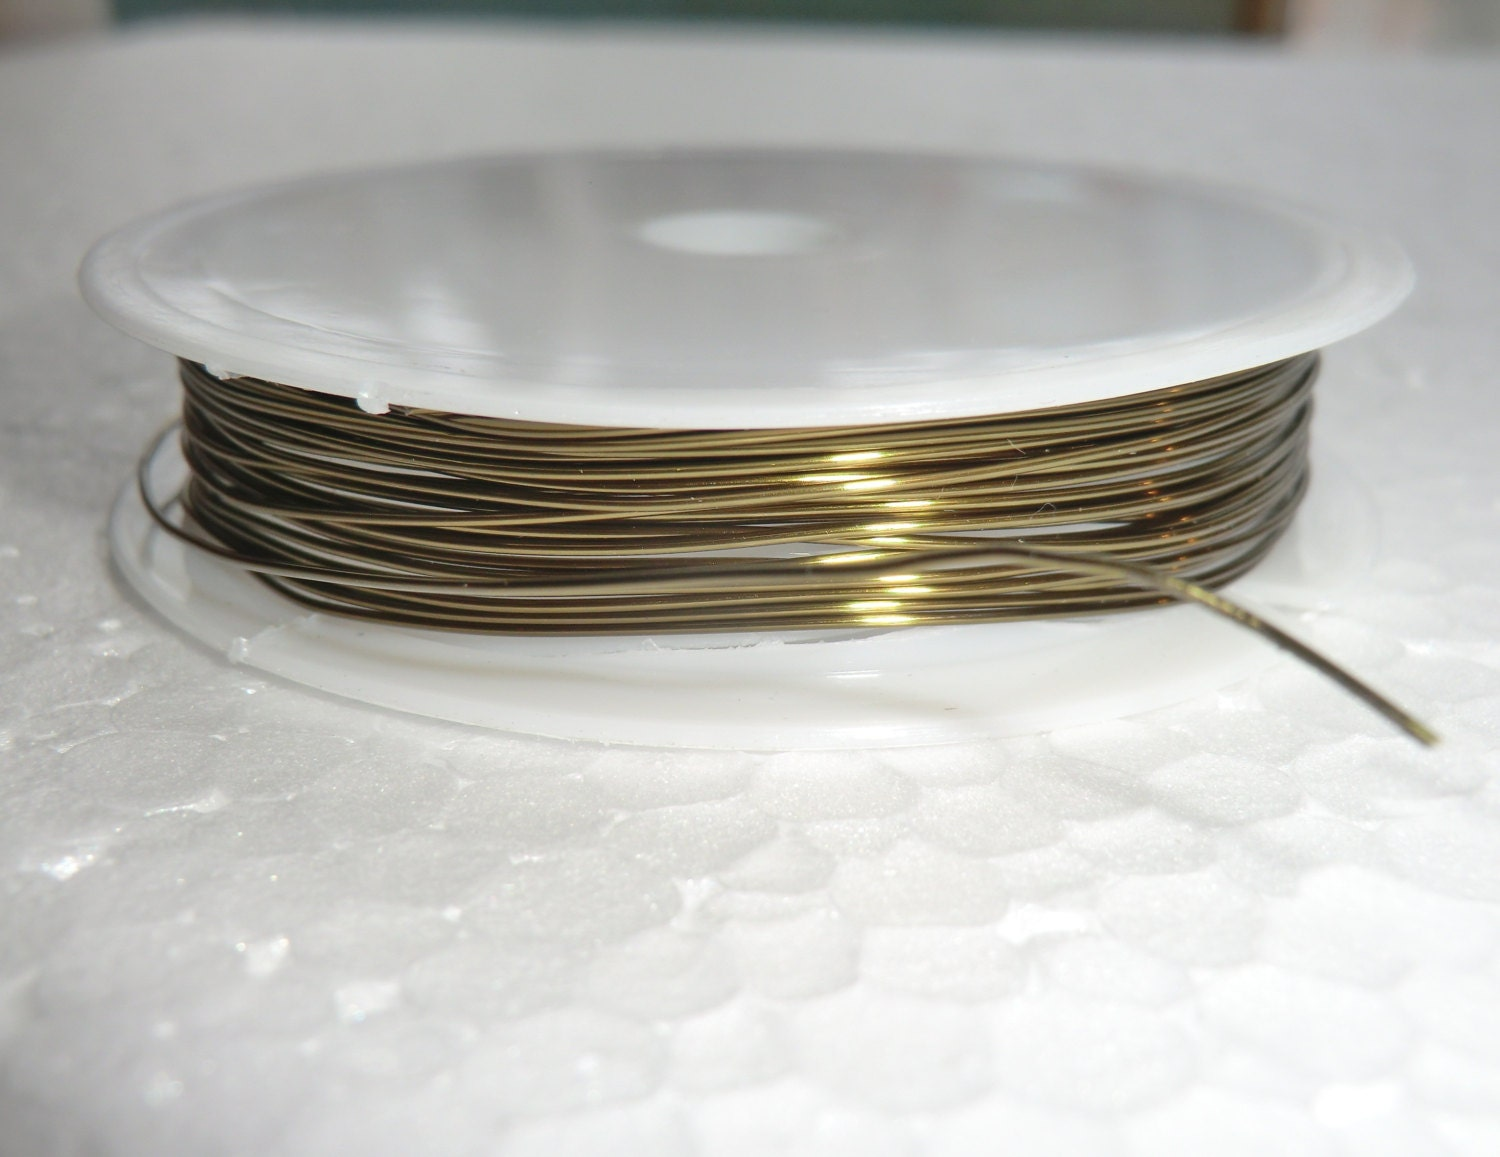 6m / 19ft Metal Chandelier Reel Wire to Make Chains of Crystals ...